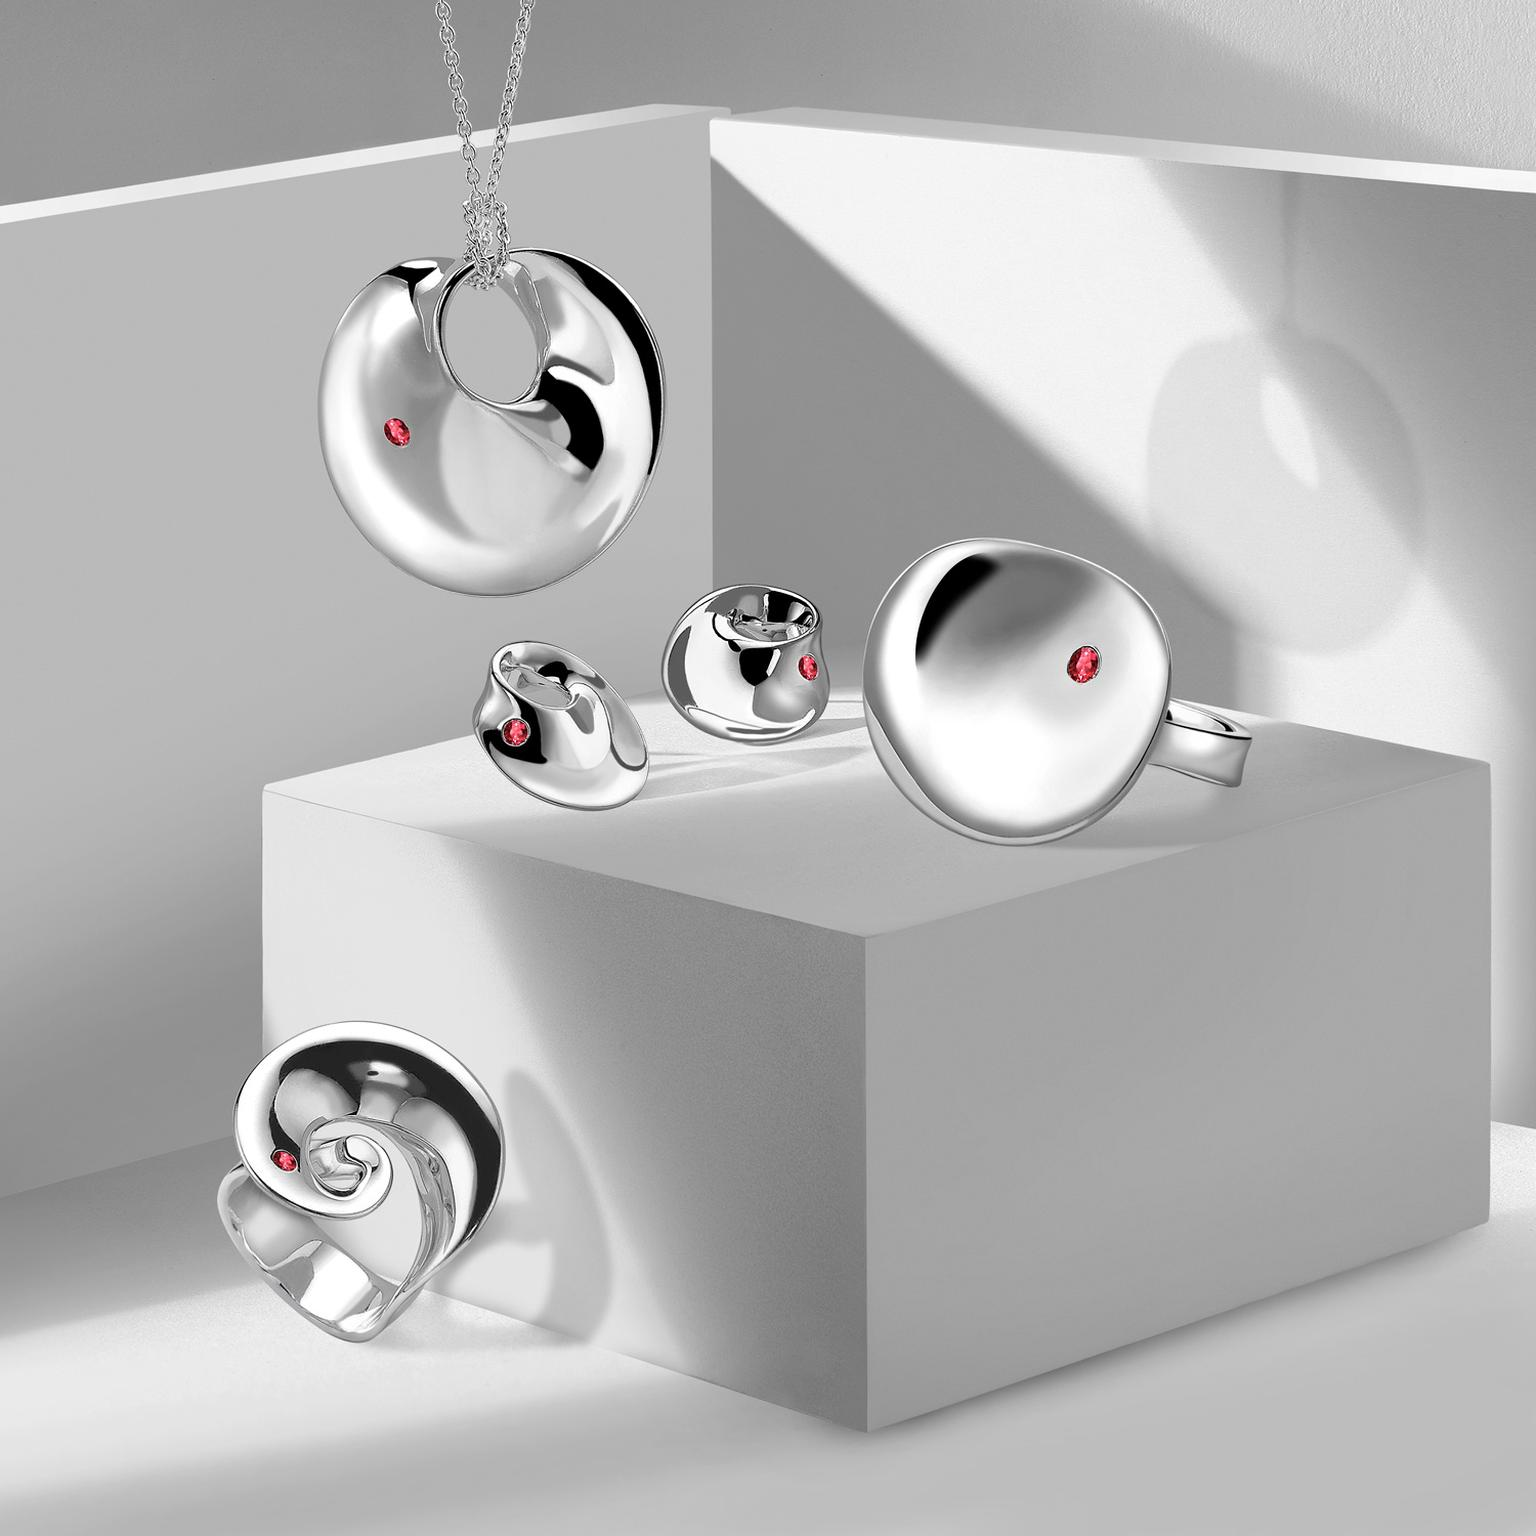 Georg Jensen x Gemfields jewellery collaboration collection